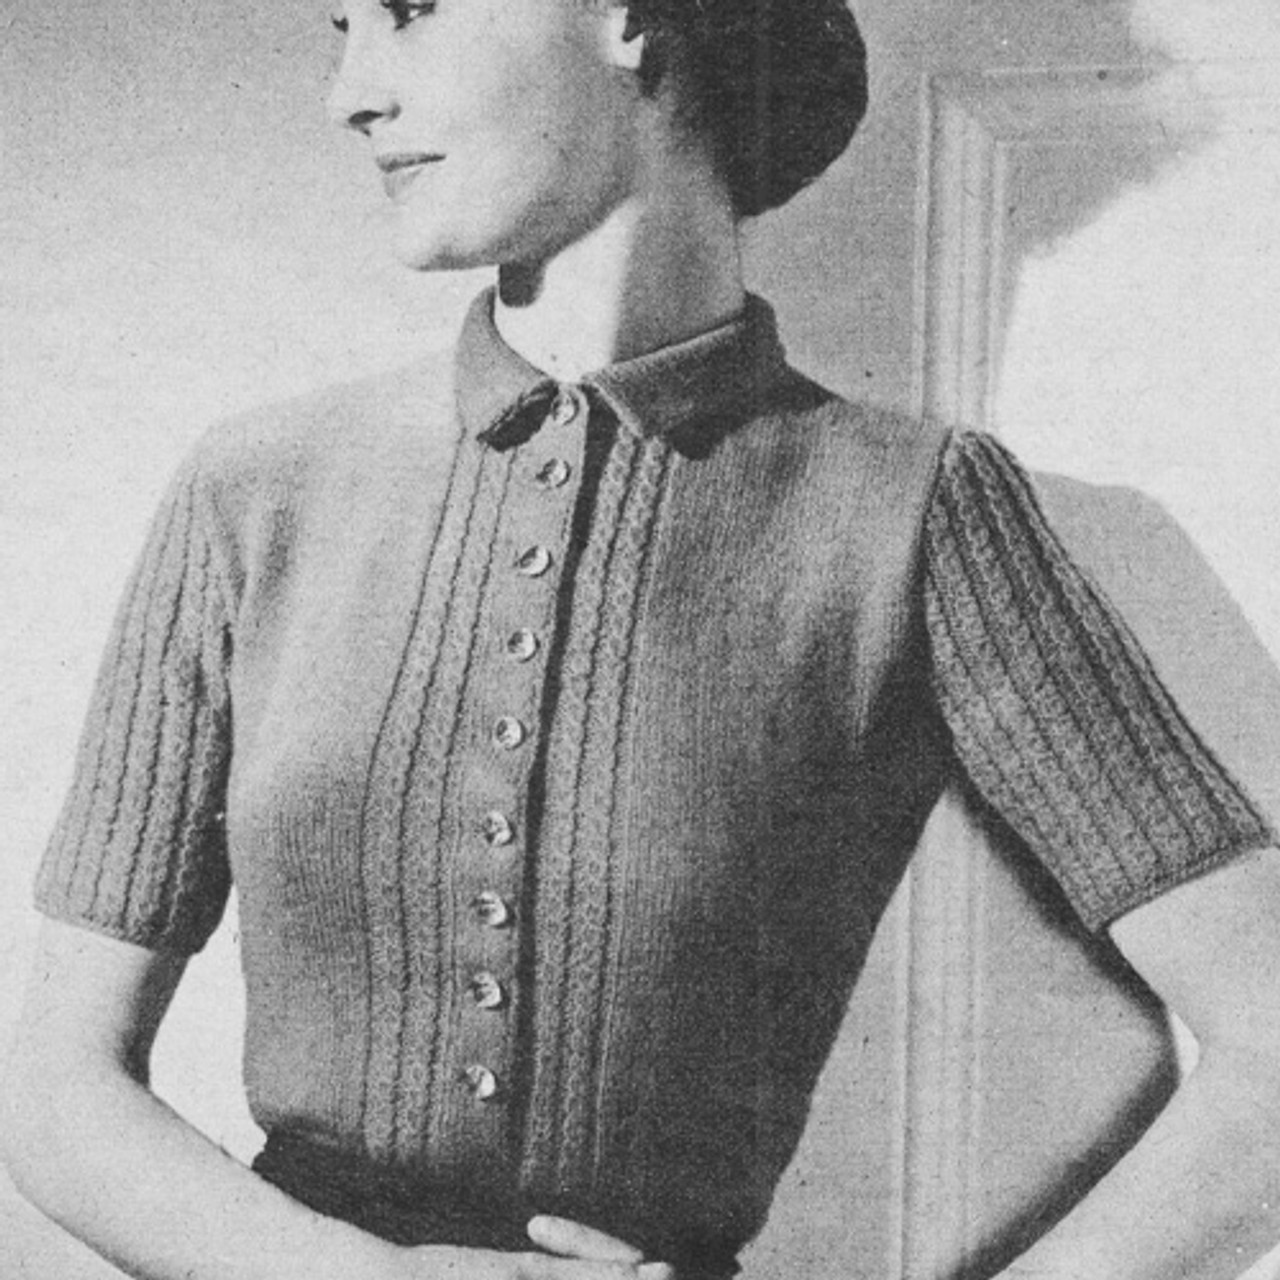 Knitted Short Sleeve Buttoned Blouse Pattern